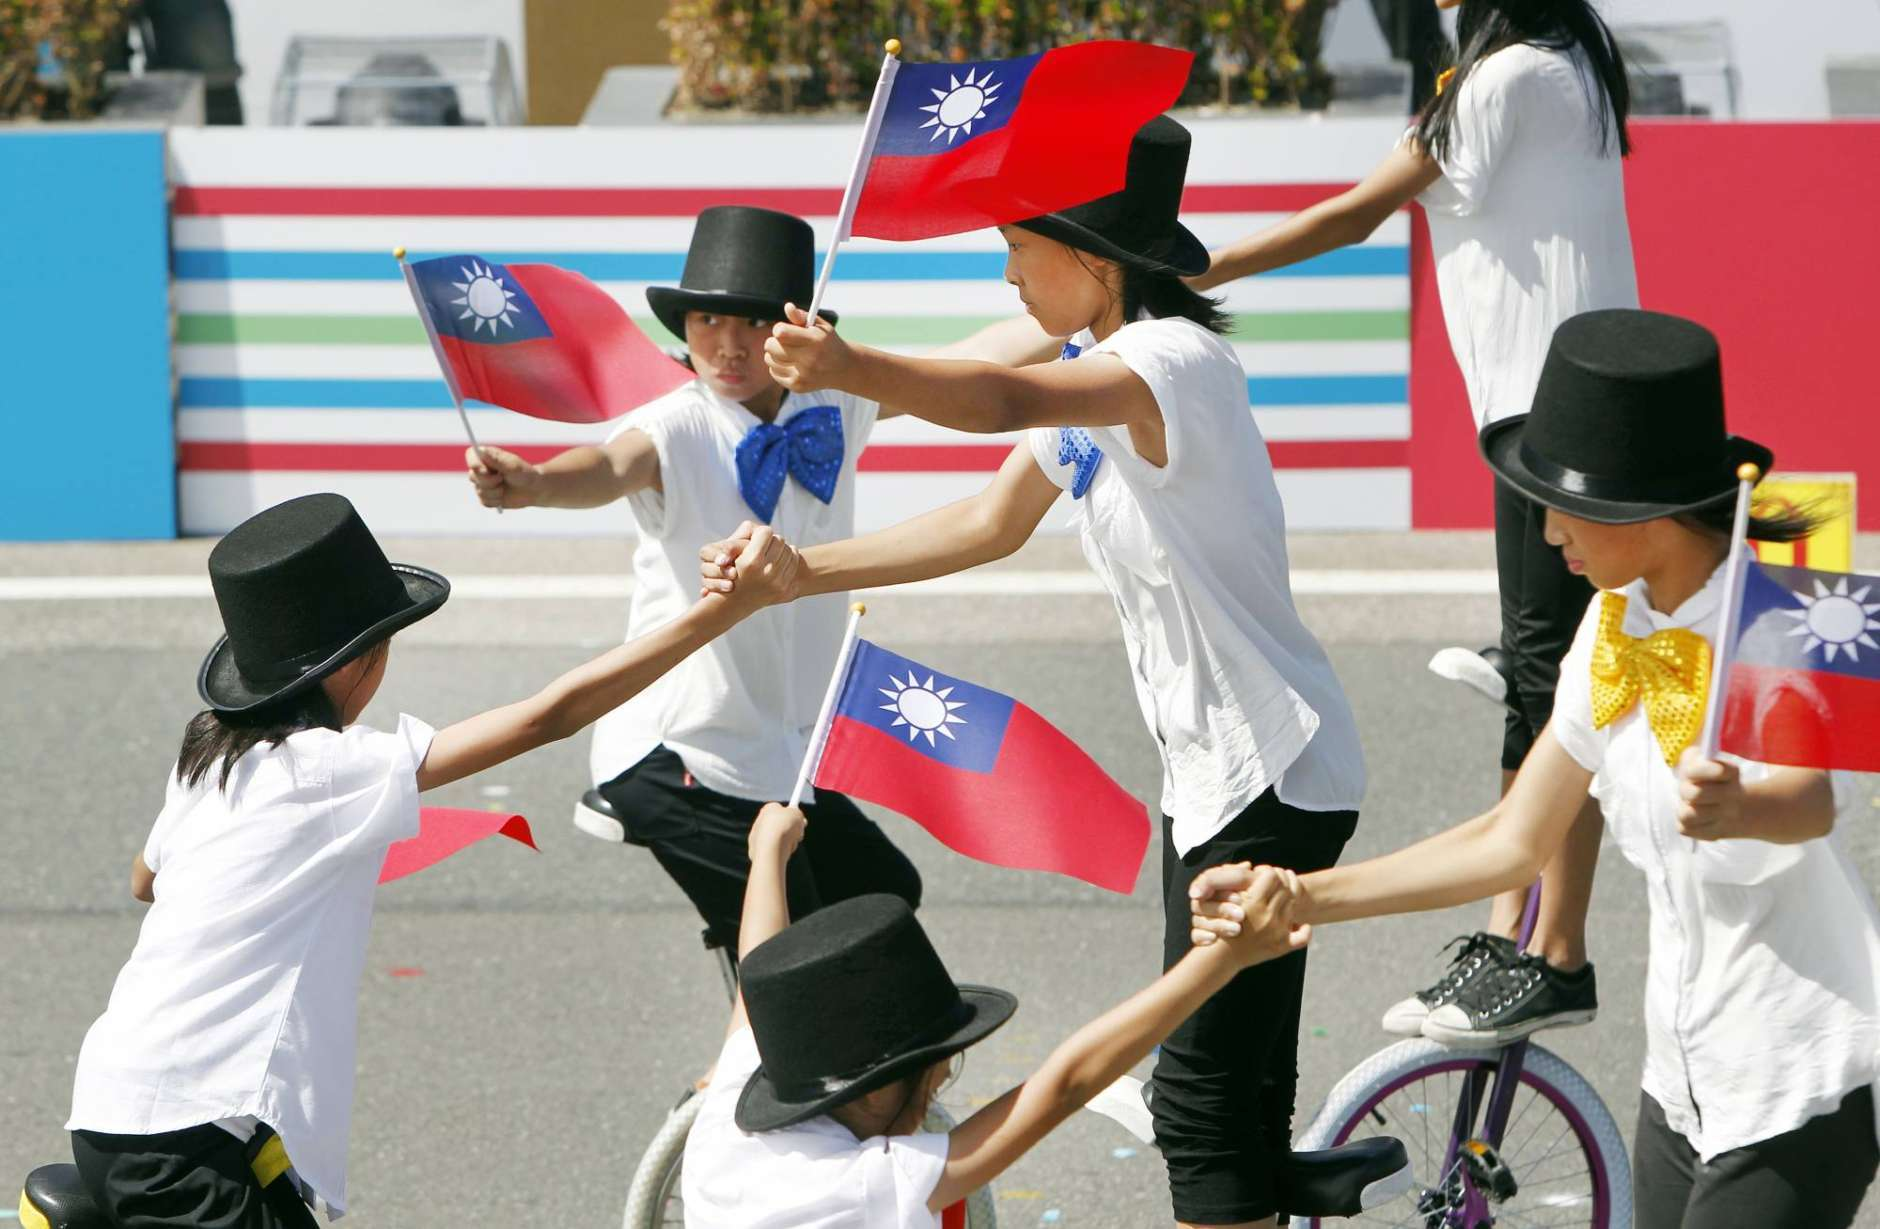 Performers show their skills during the National Day celebrations in Taipei, Taiwan, Tuesday, Oct. 10, 2017. Taiwan's independence-leaning government will defend the self-governing island's freedoms and democratic system amid heightened tensions with rival China, President Tsai Ing-wen said Tuesday. (AP Photo/Chiang Ying-ying)